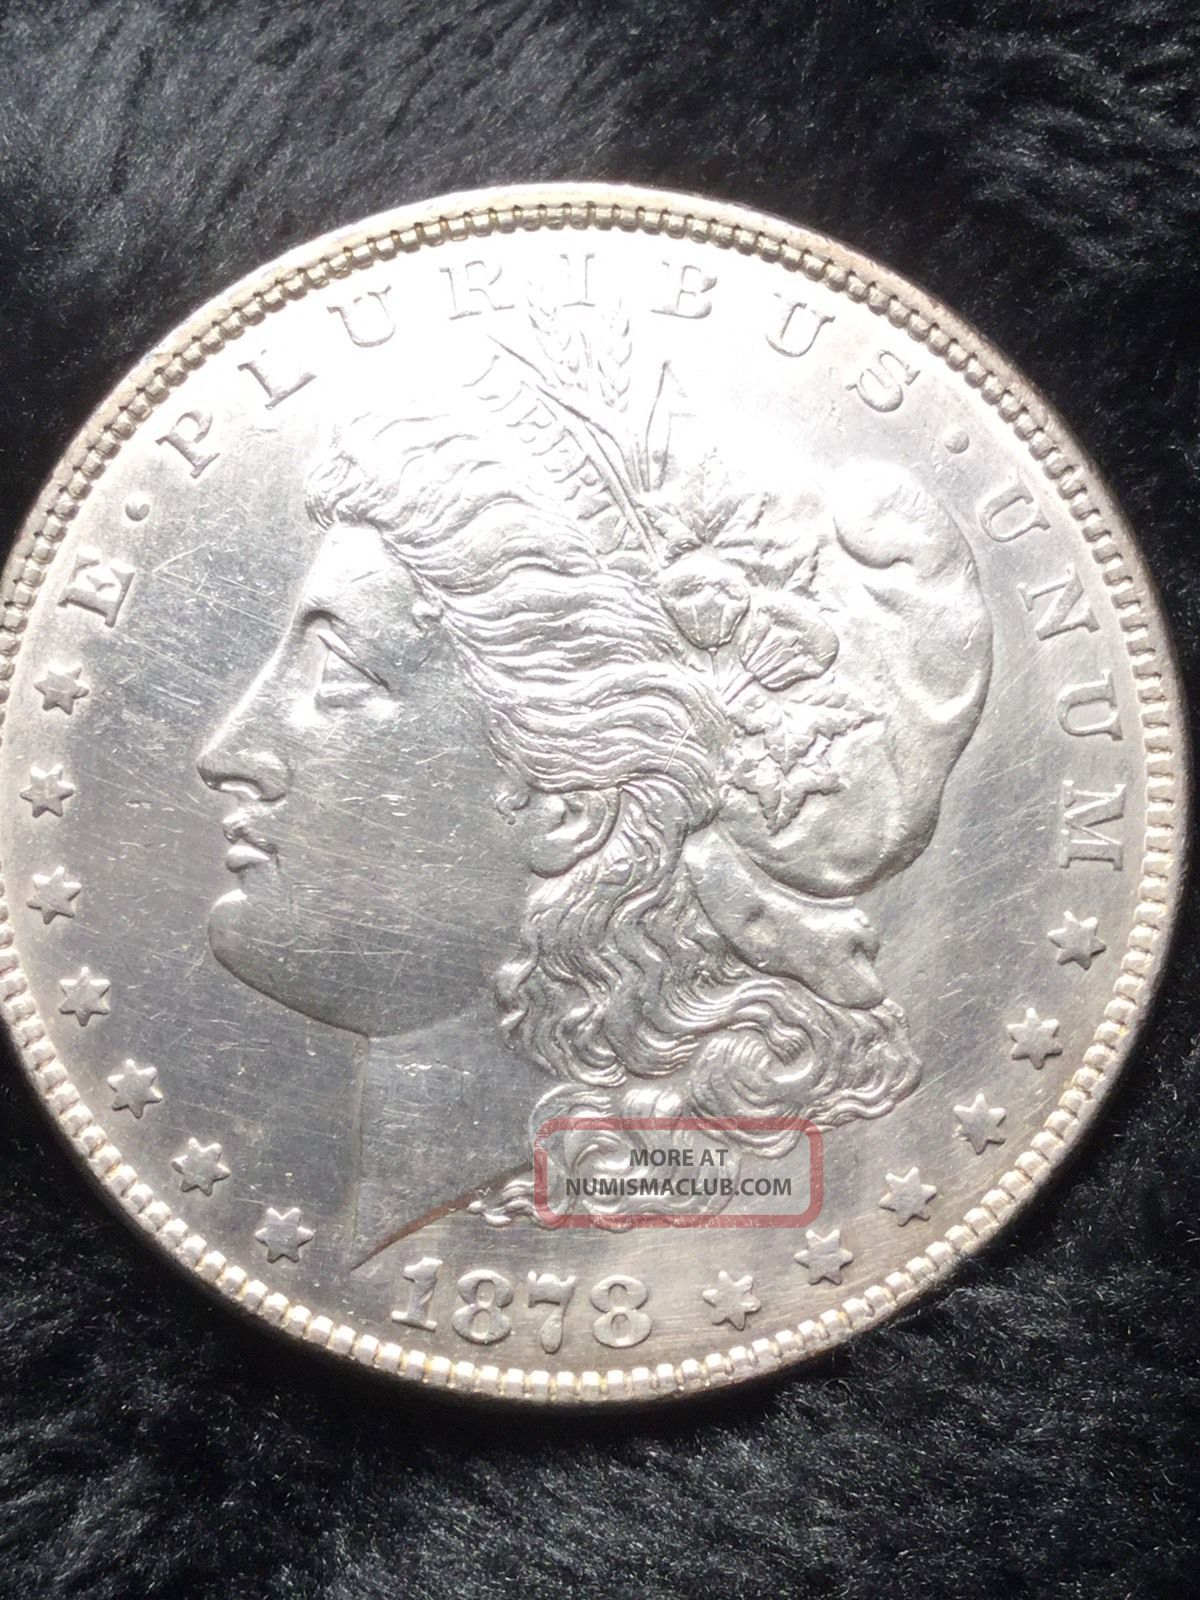 1878 7tf Rev78 Morgan Silver Dollar $1 Coin 90 Au,  Light Töne On Reverse Gem Dollars photo